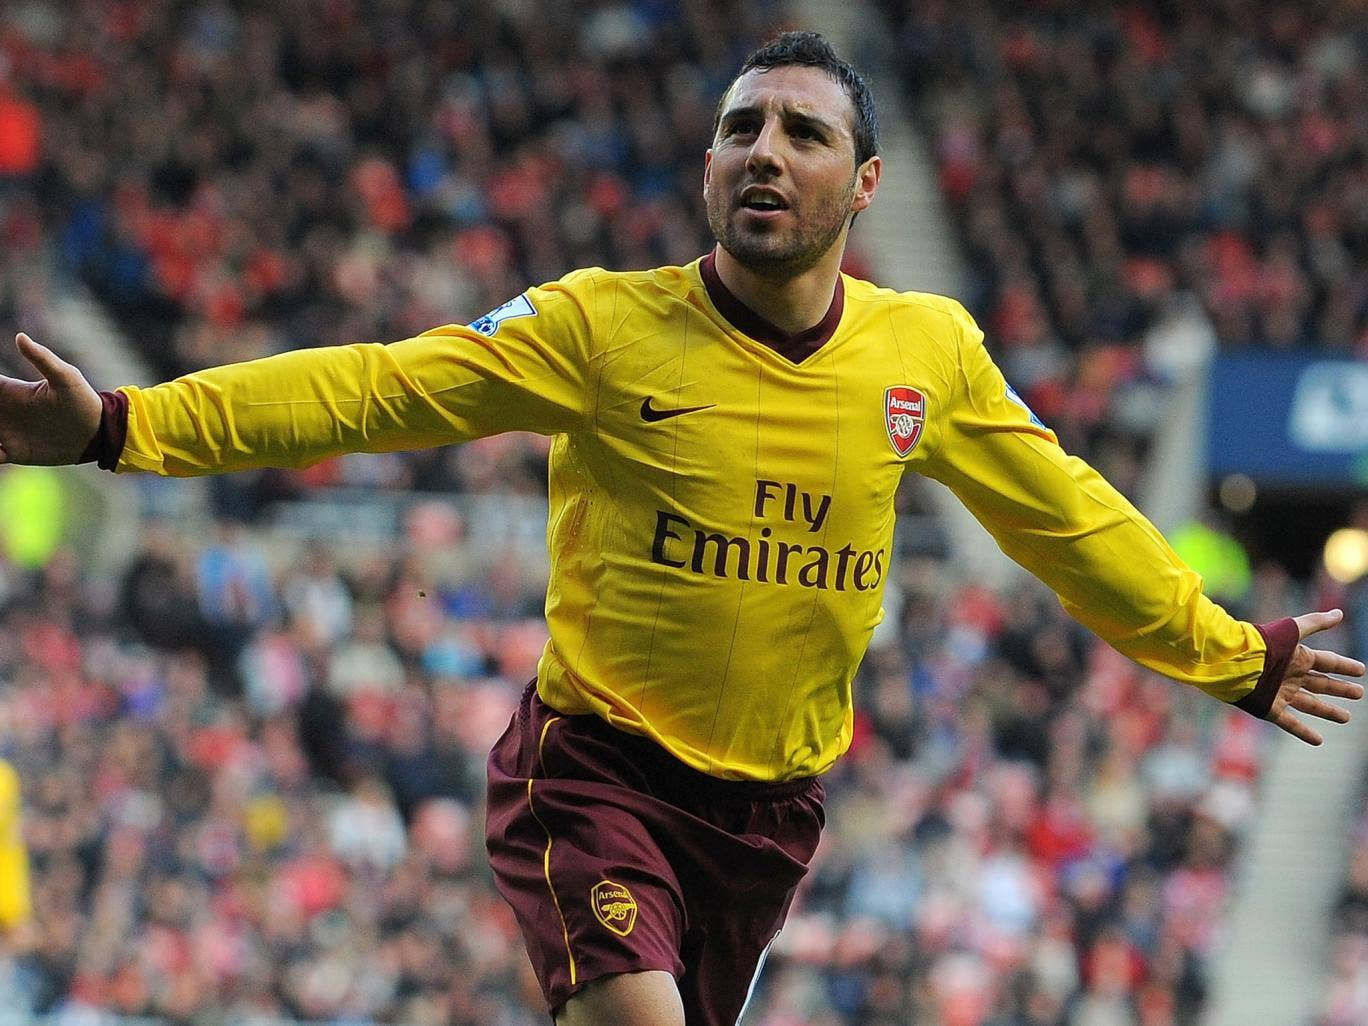 Santi Cazorla celebrates his goal for Arsenal